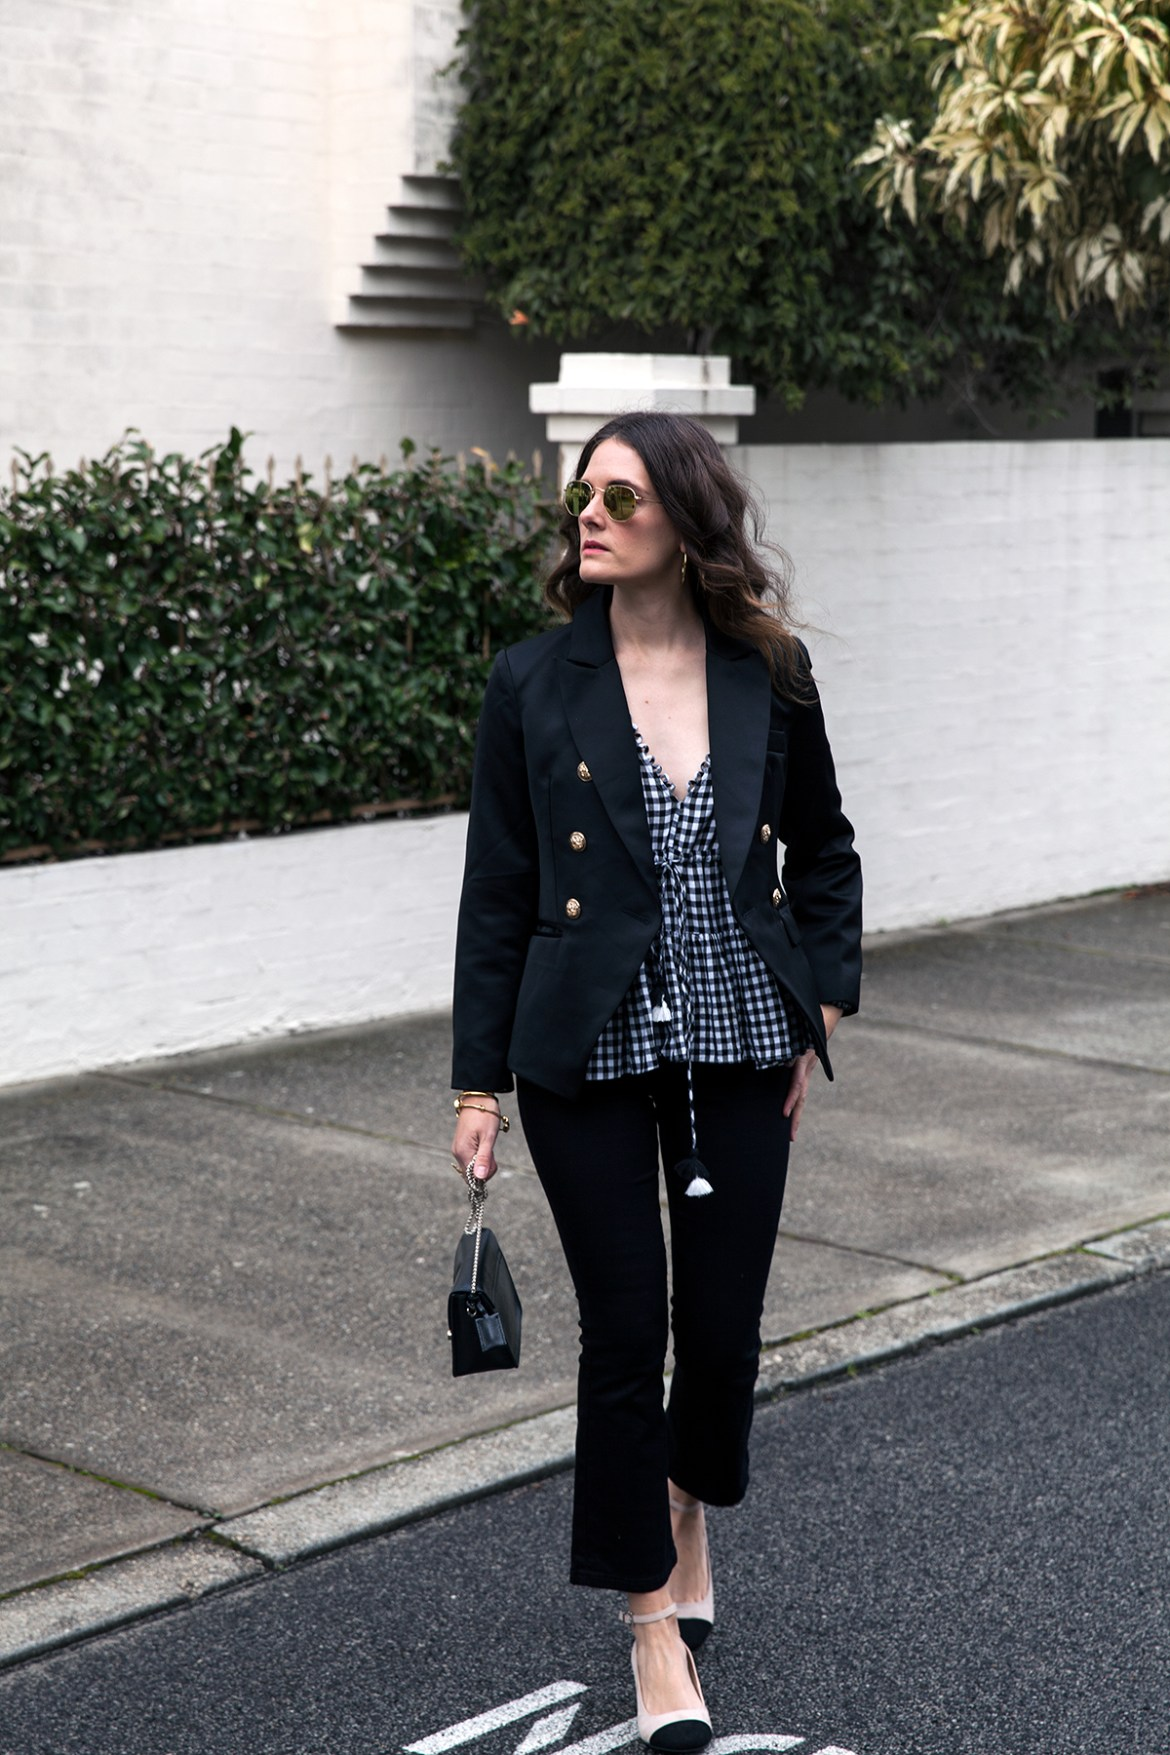 Gingham top by Bohemian Traders worn by Inspiring Wit fashion blogger